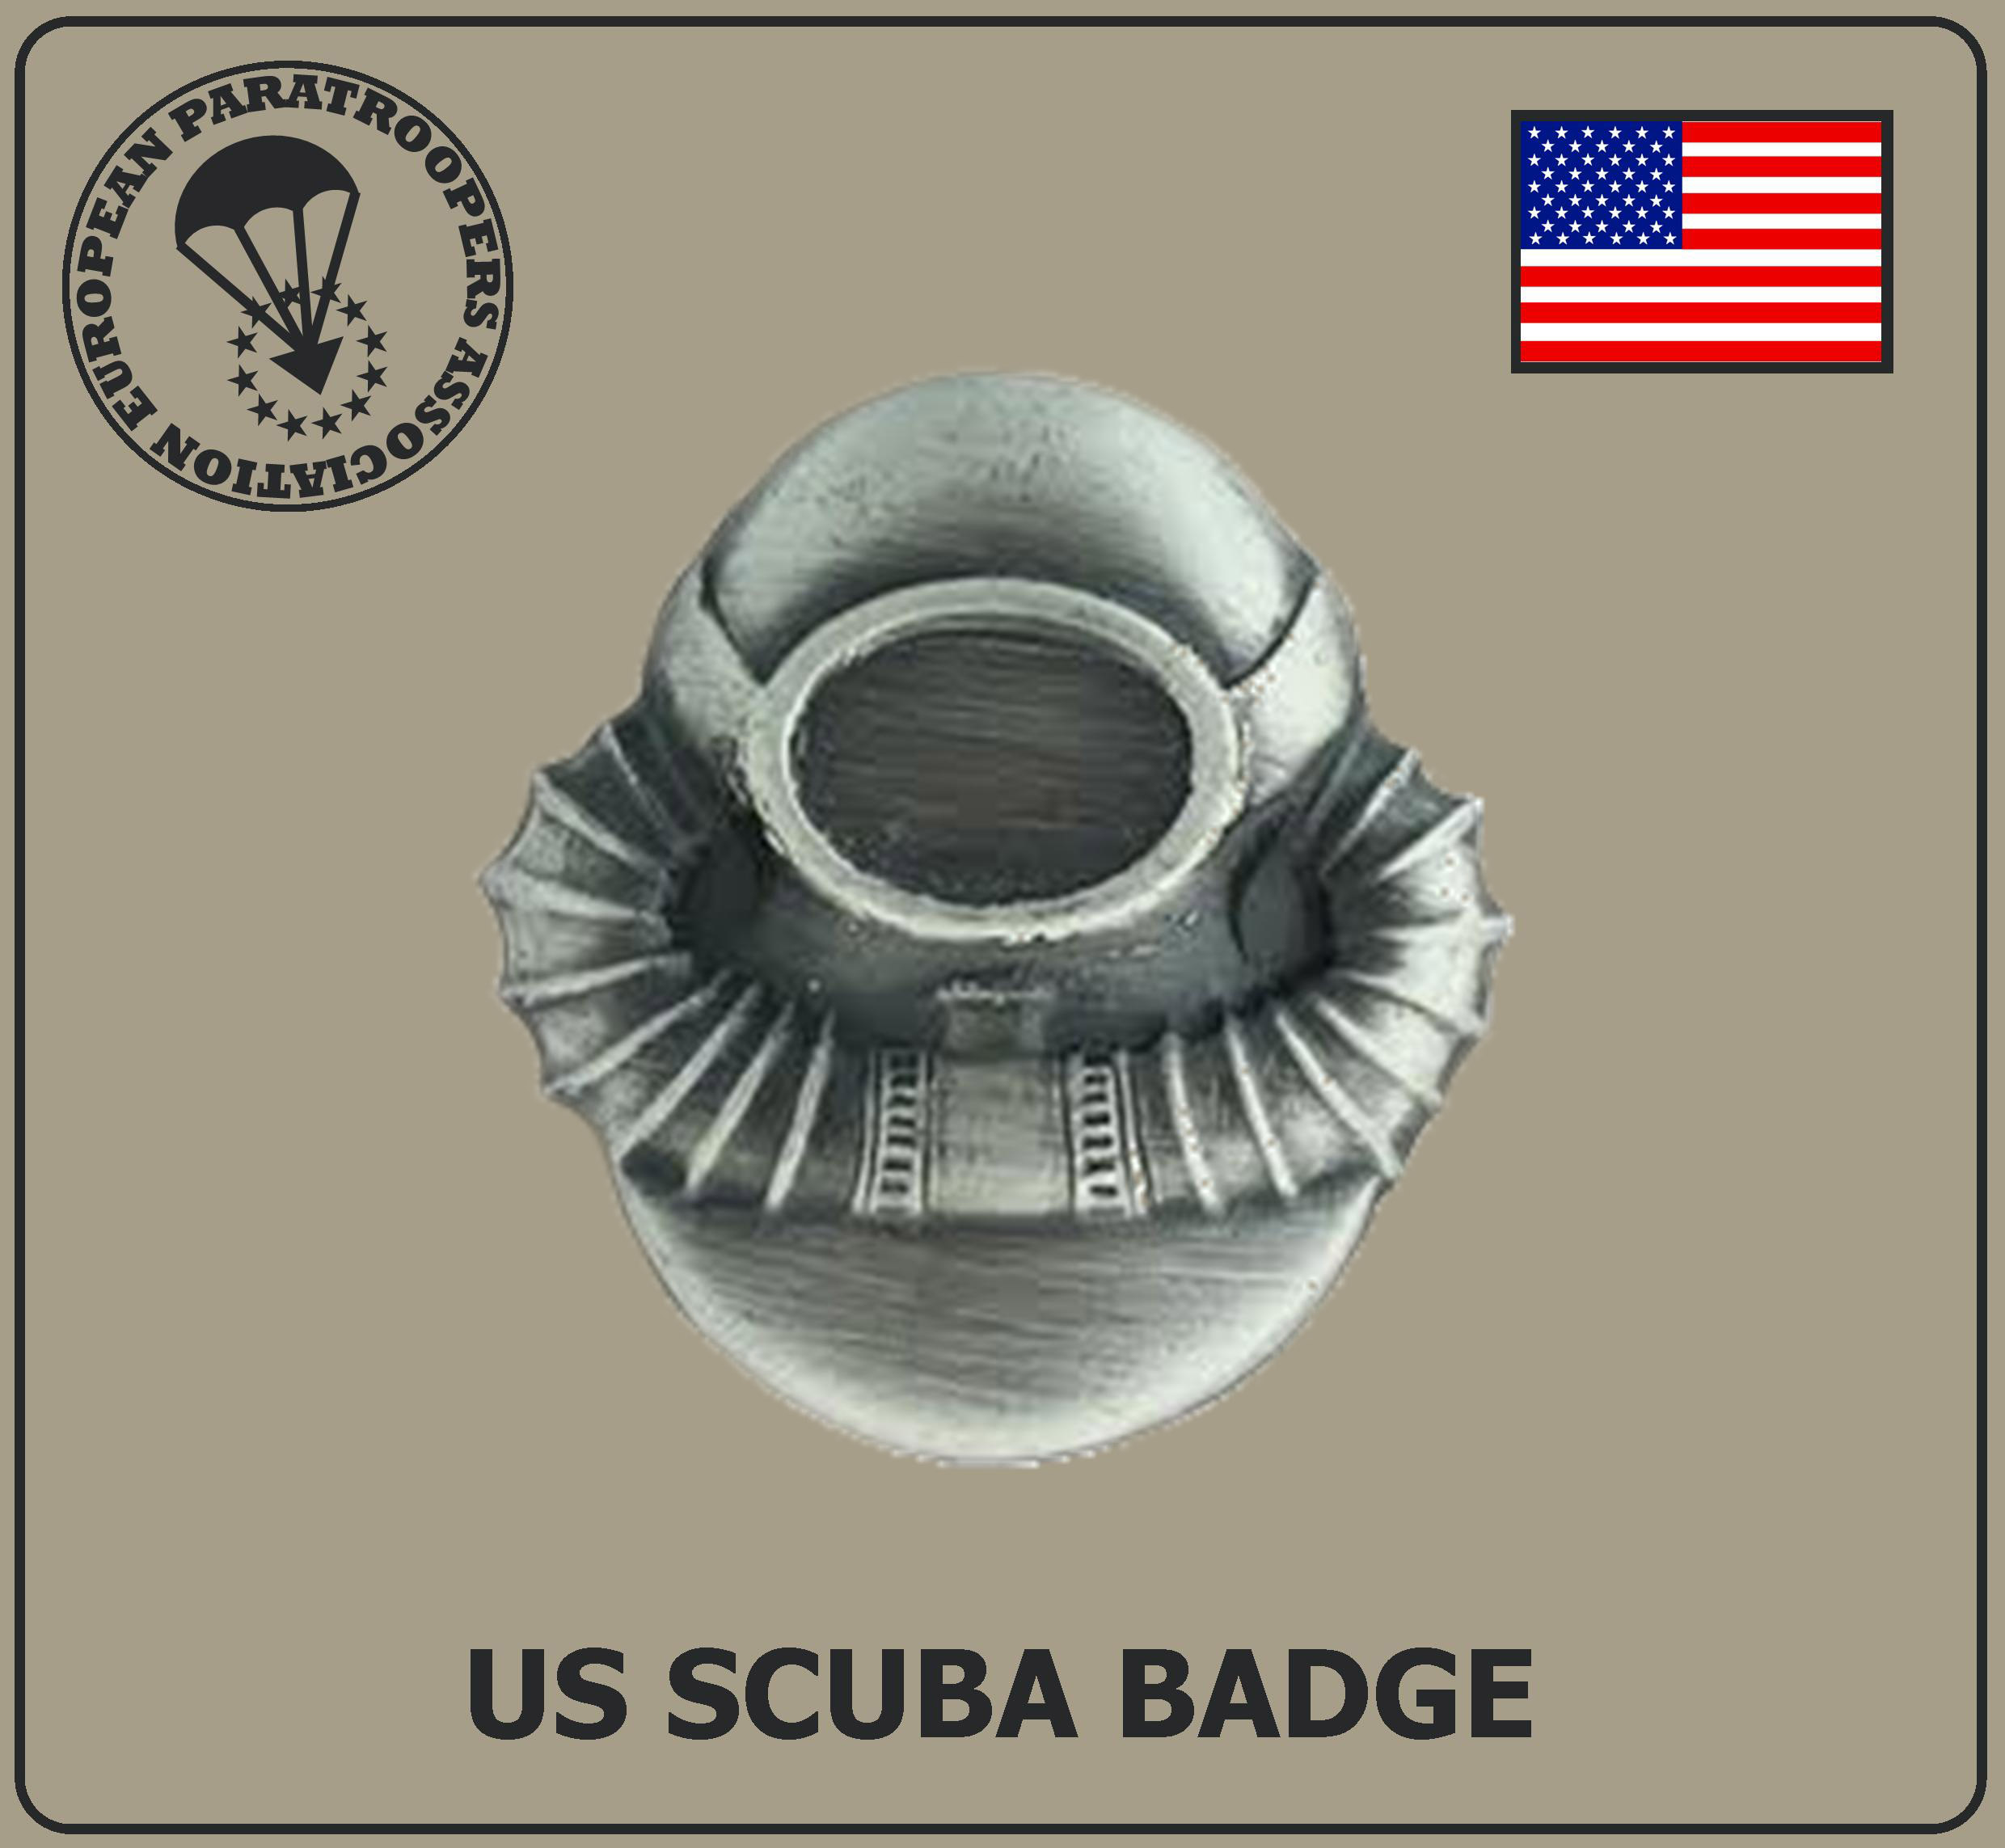 US SCUBA BADGE